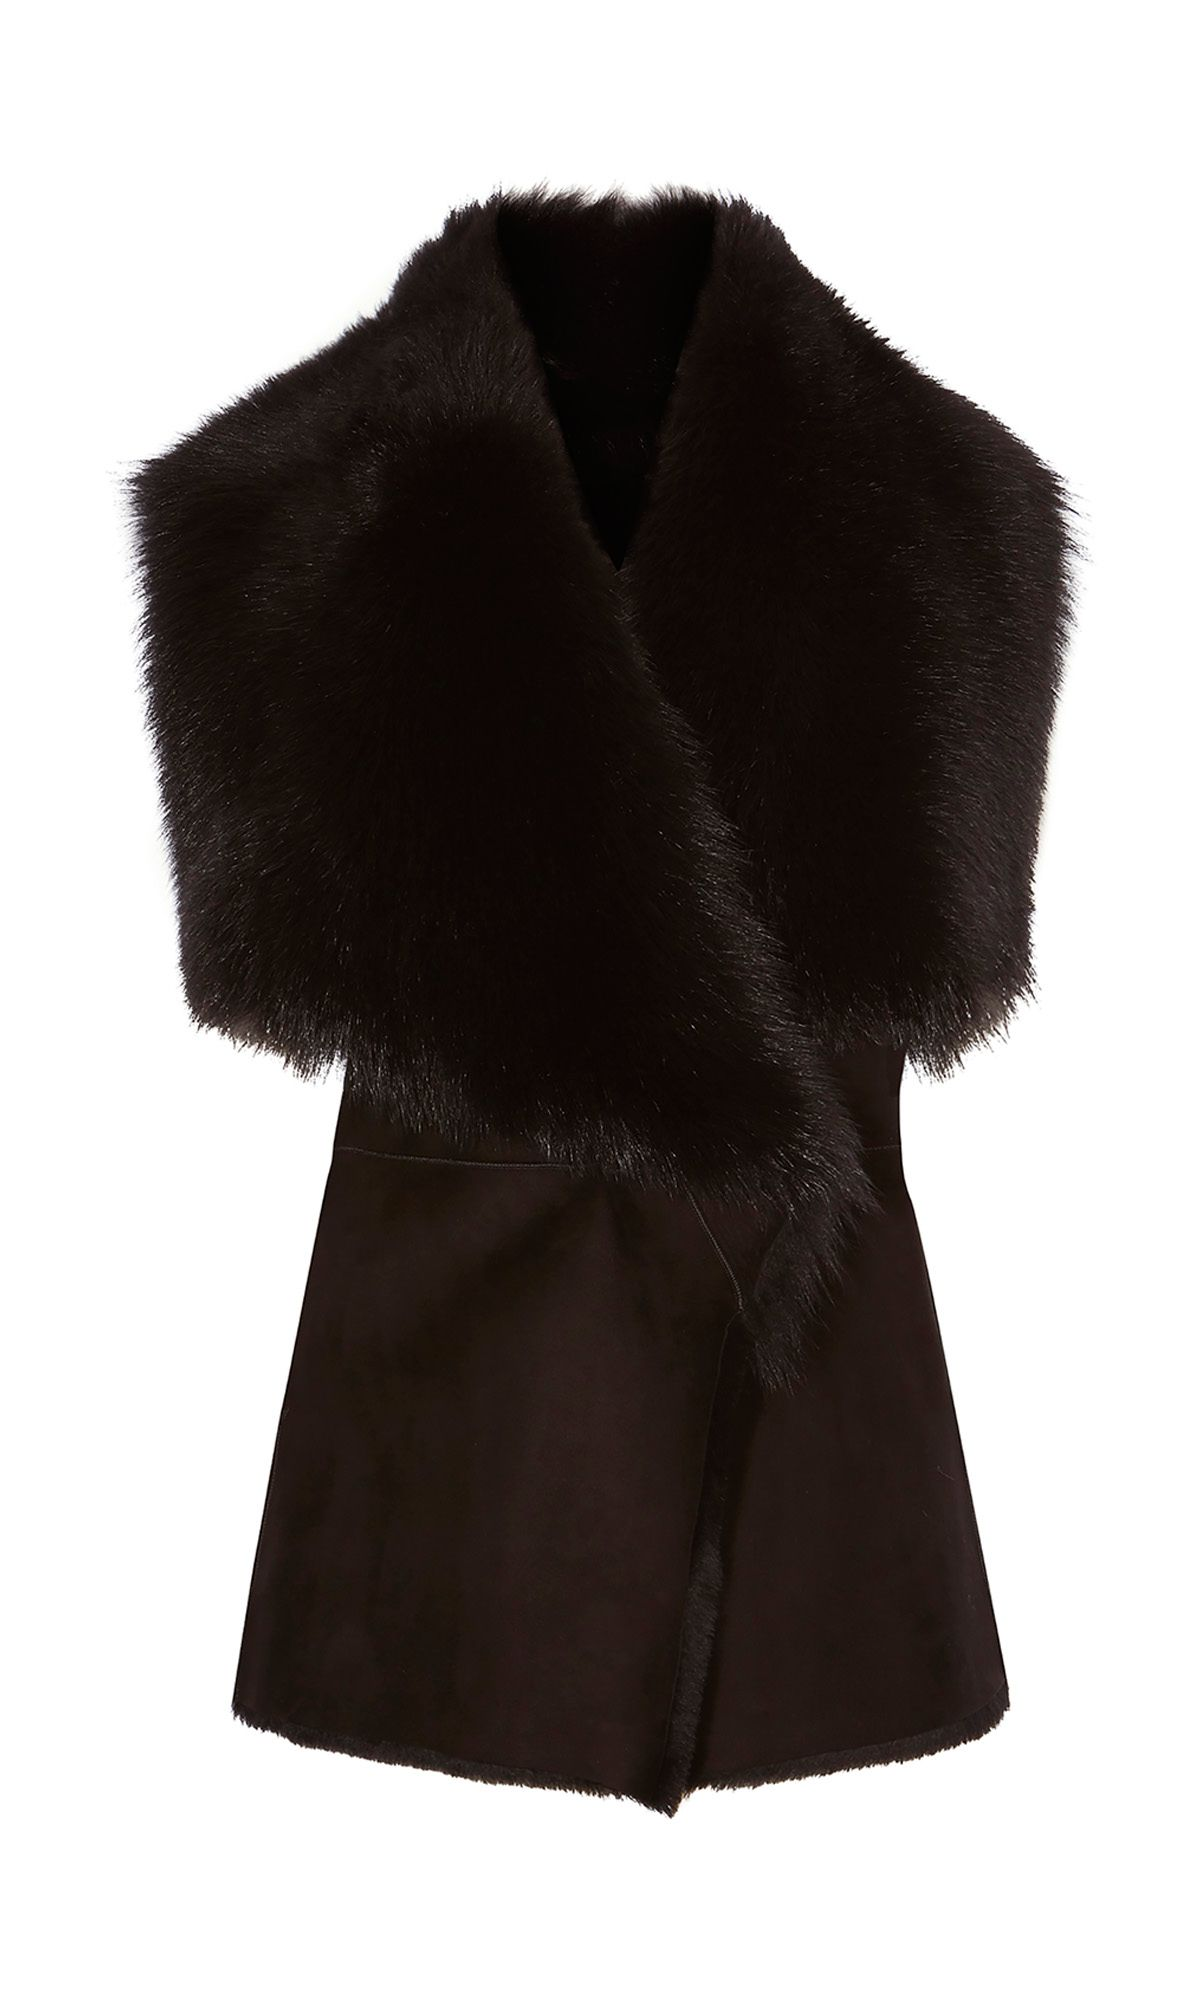 Karen Millen Luxury Shearling Gilet, Black